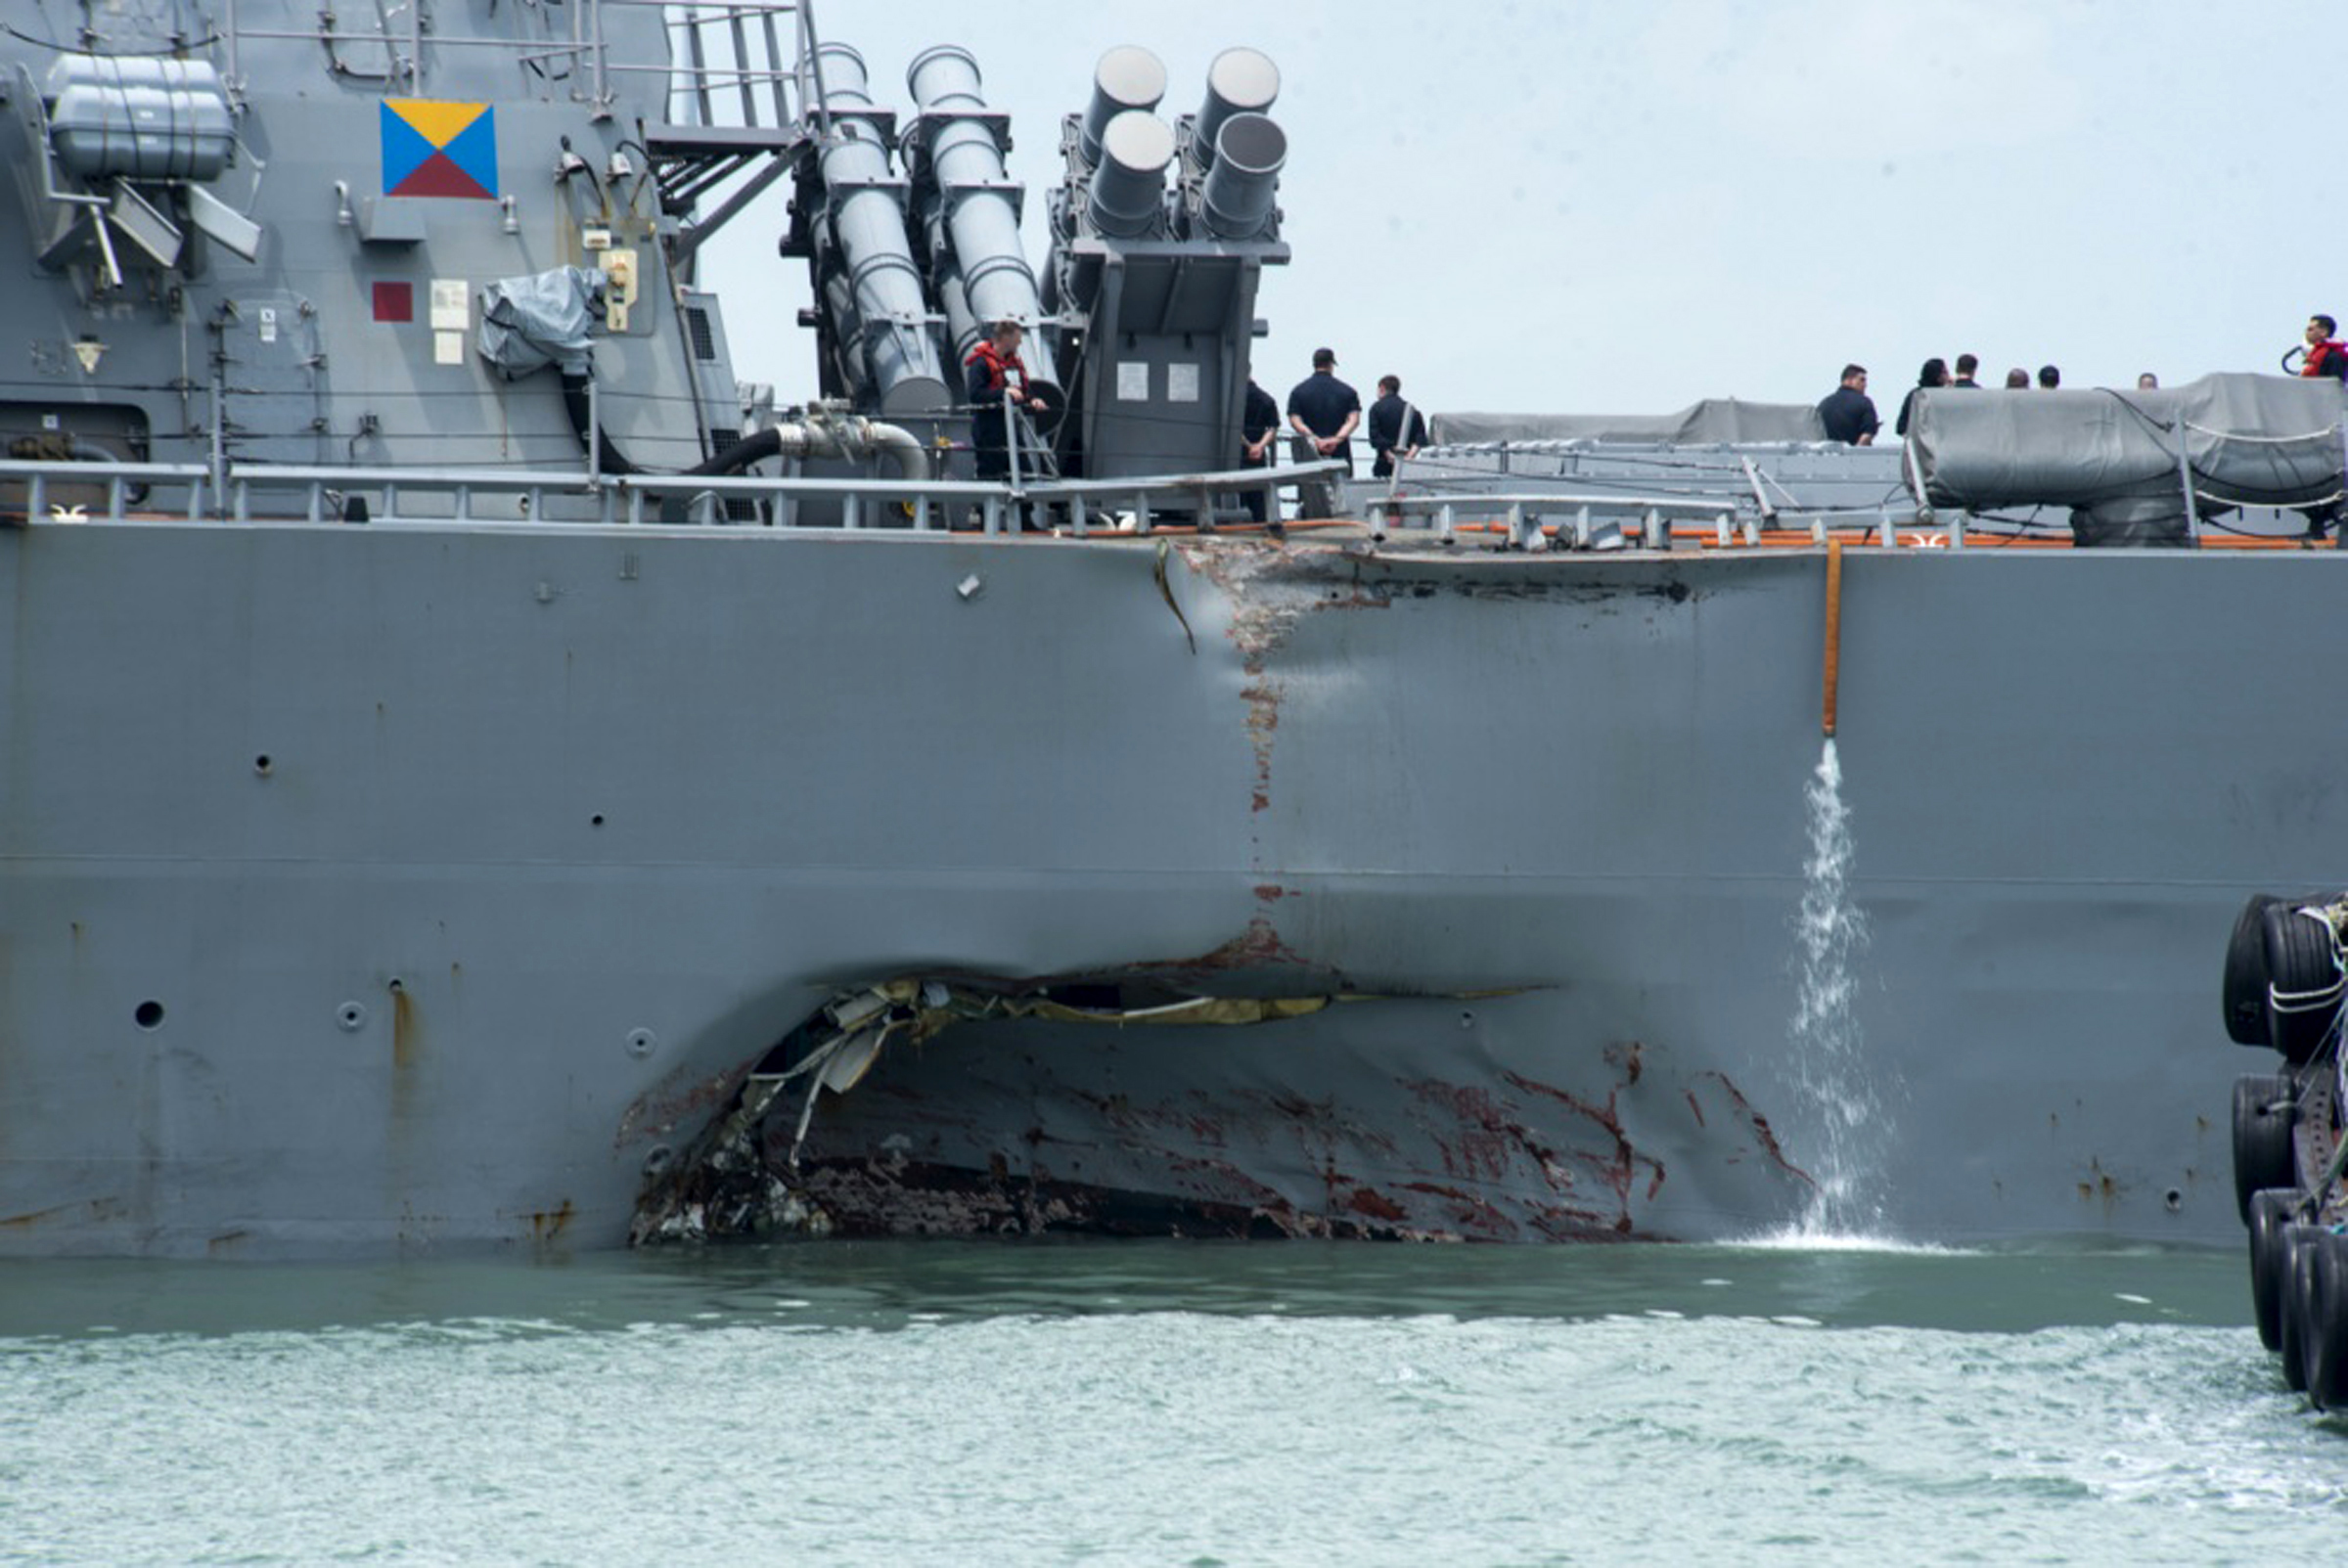 "APTOPIX Singapore US Navy Ship Collision-4 Damage to the portside is visible as the Guided-missile destroyer USS John S. McCain (DDG 56) steers towards Changi naval base in Singapore following a collision with the merchant vessel Alnic MC Monday, Aug. 21, 2017. The USS John S. McCain was docked at Singapore's naval base with ""significant damage"" to its hull after an early morning collision with the Alnic MC as vessels from several nations searched Monday for missing U.S. sailors. (Mass Communication Specialist 2nd Class Joshua Fulton/U.S. Navy photo via AP)"